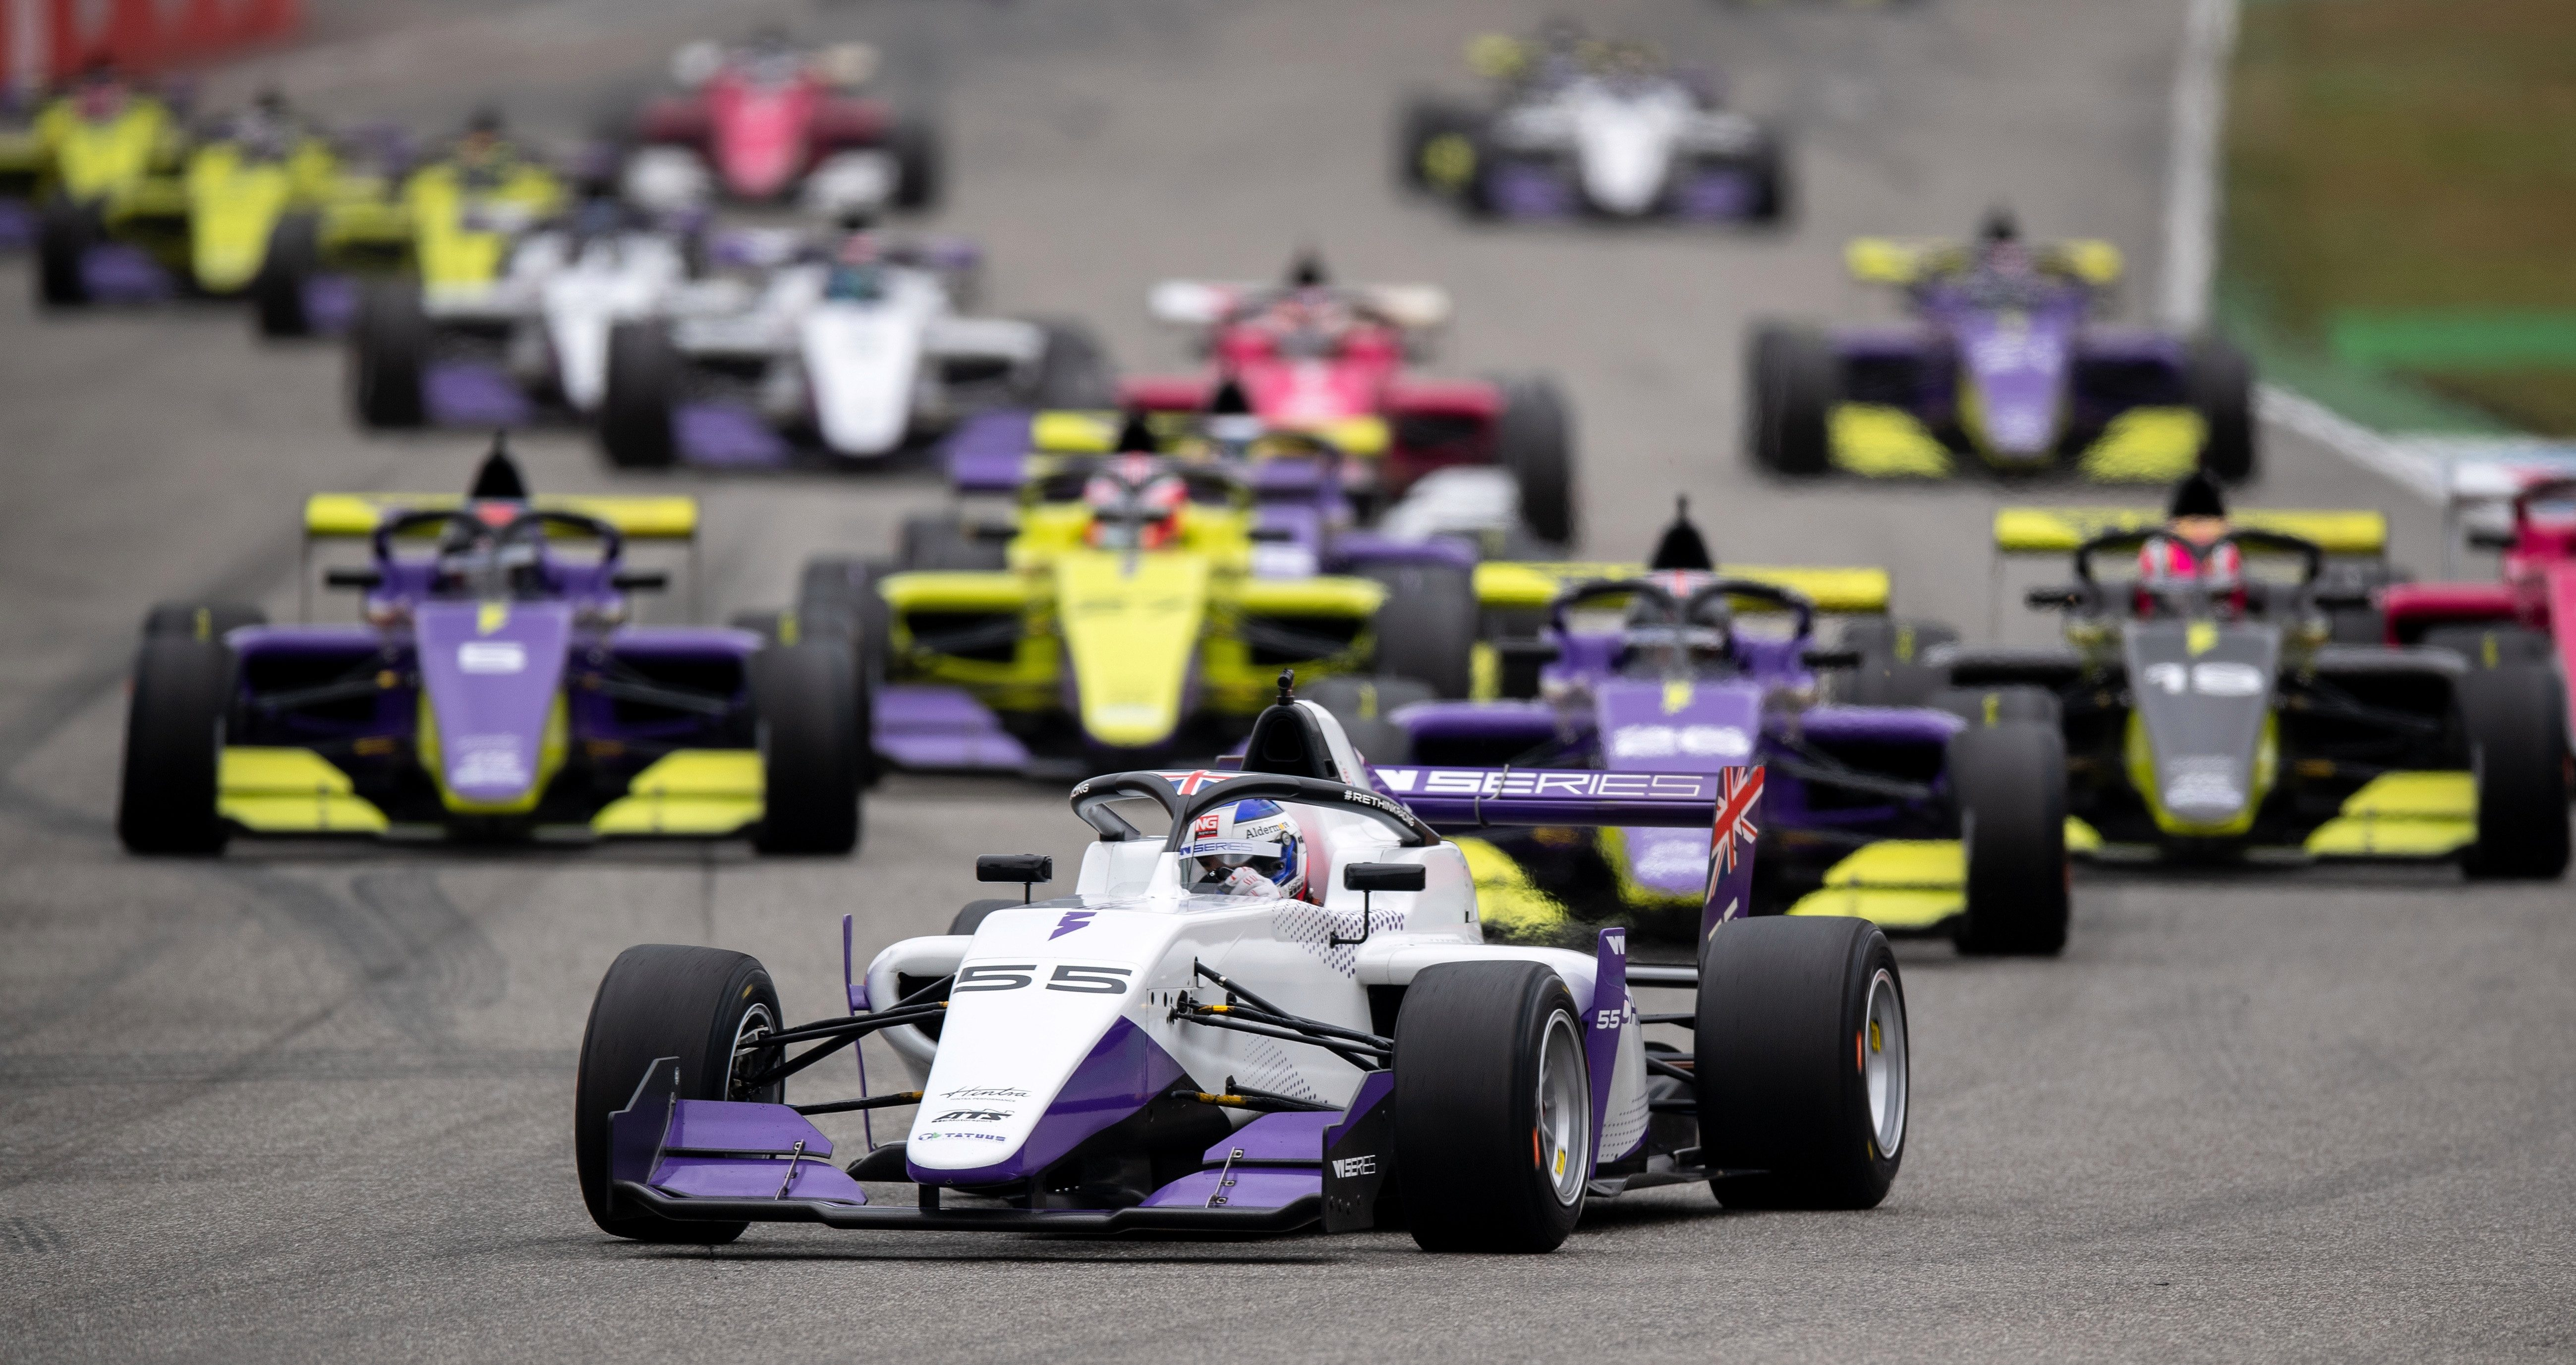 The W Series enjoyed a successful first weekend, as Britain's Jamie Chadwick drove to victory